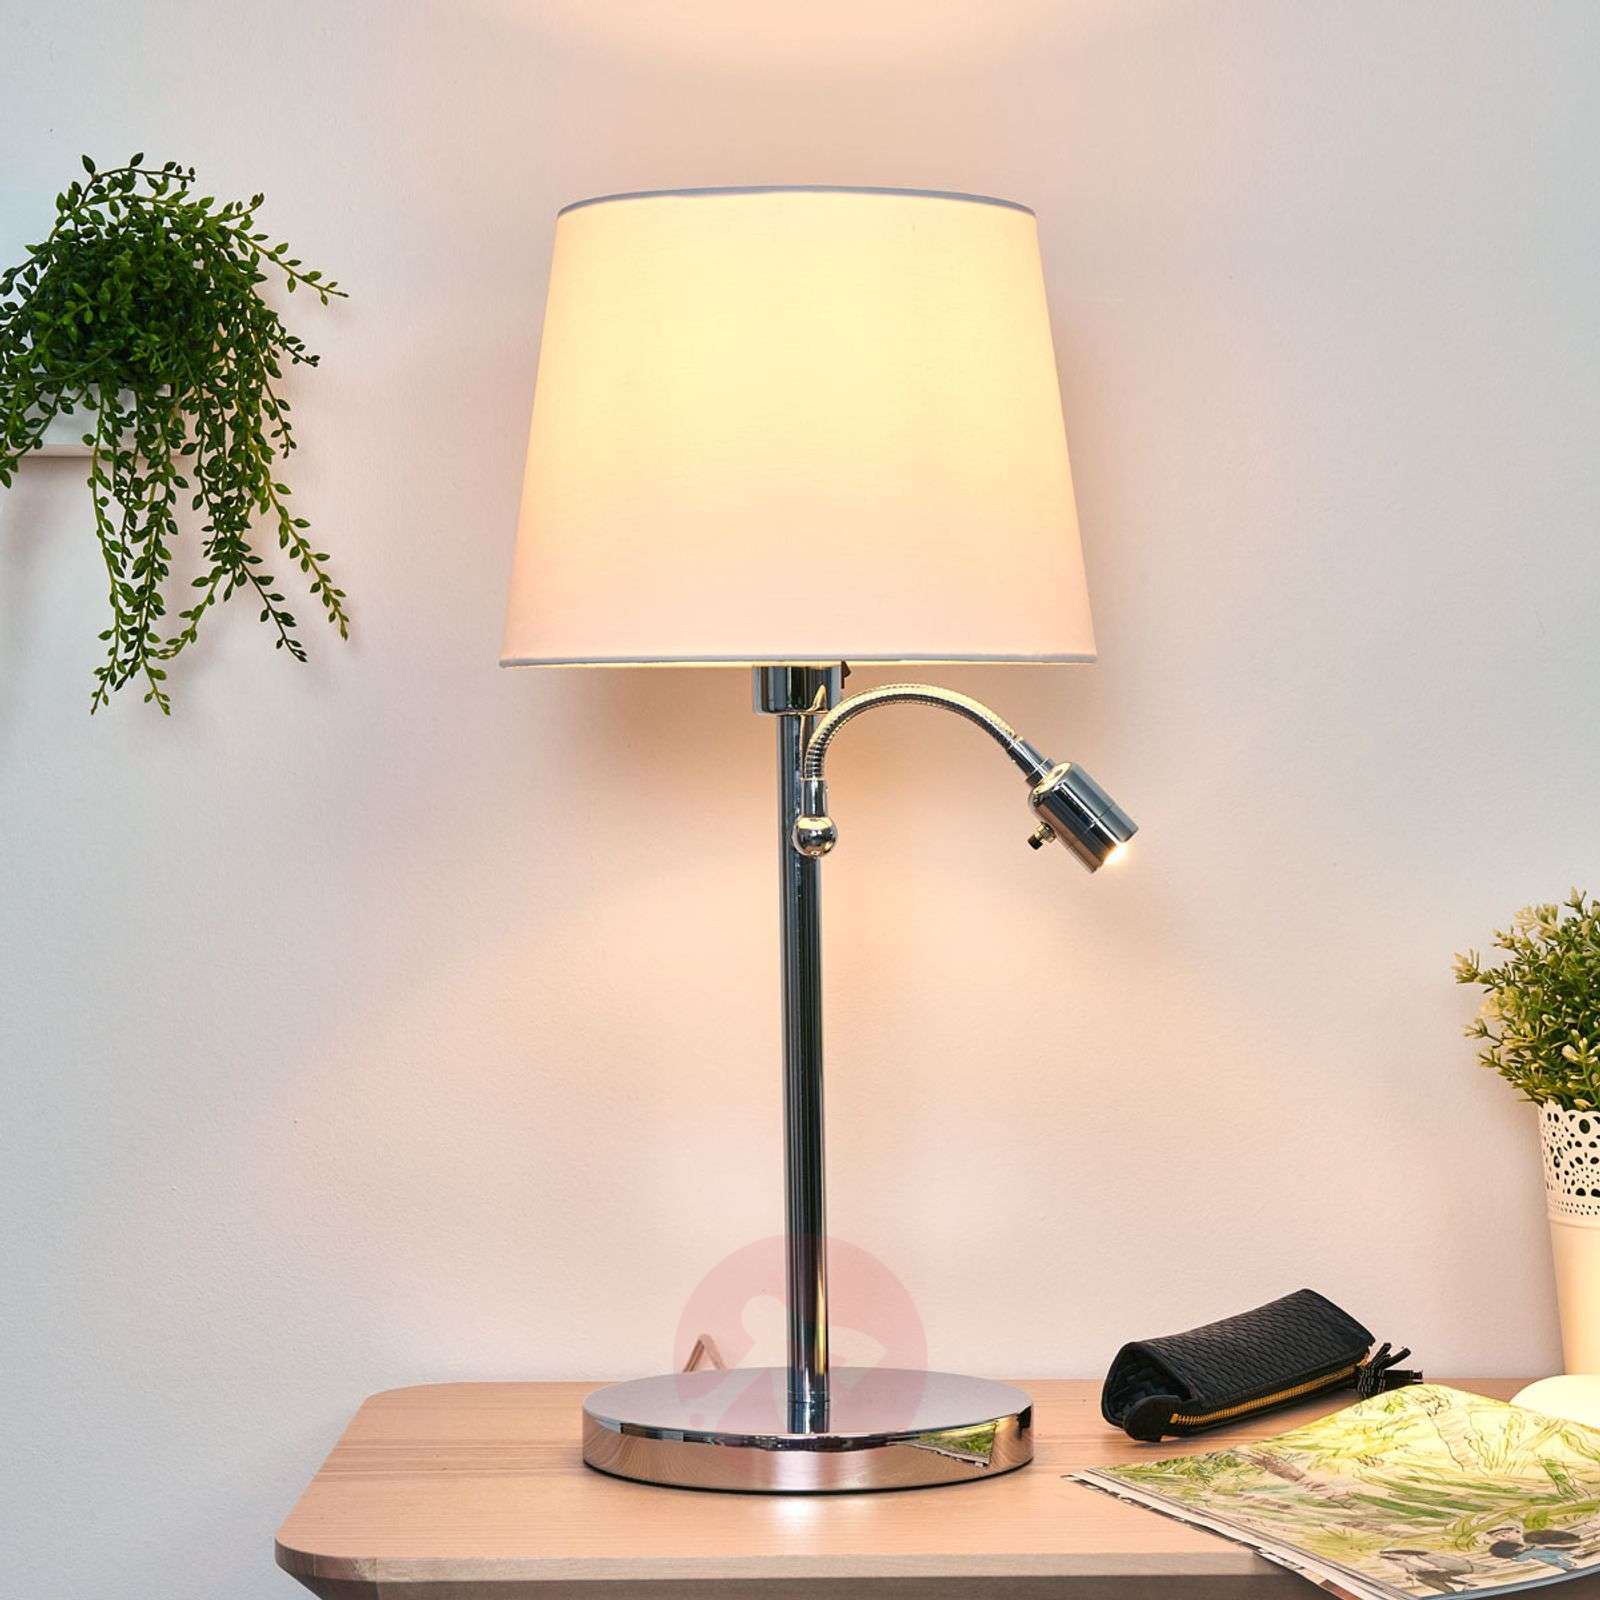 lavo table lamp with led reading light. Black Bedroom Furniture Sets. Home Design Ideas